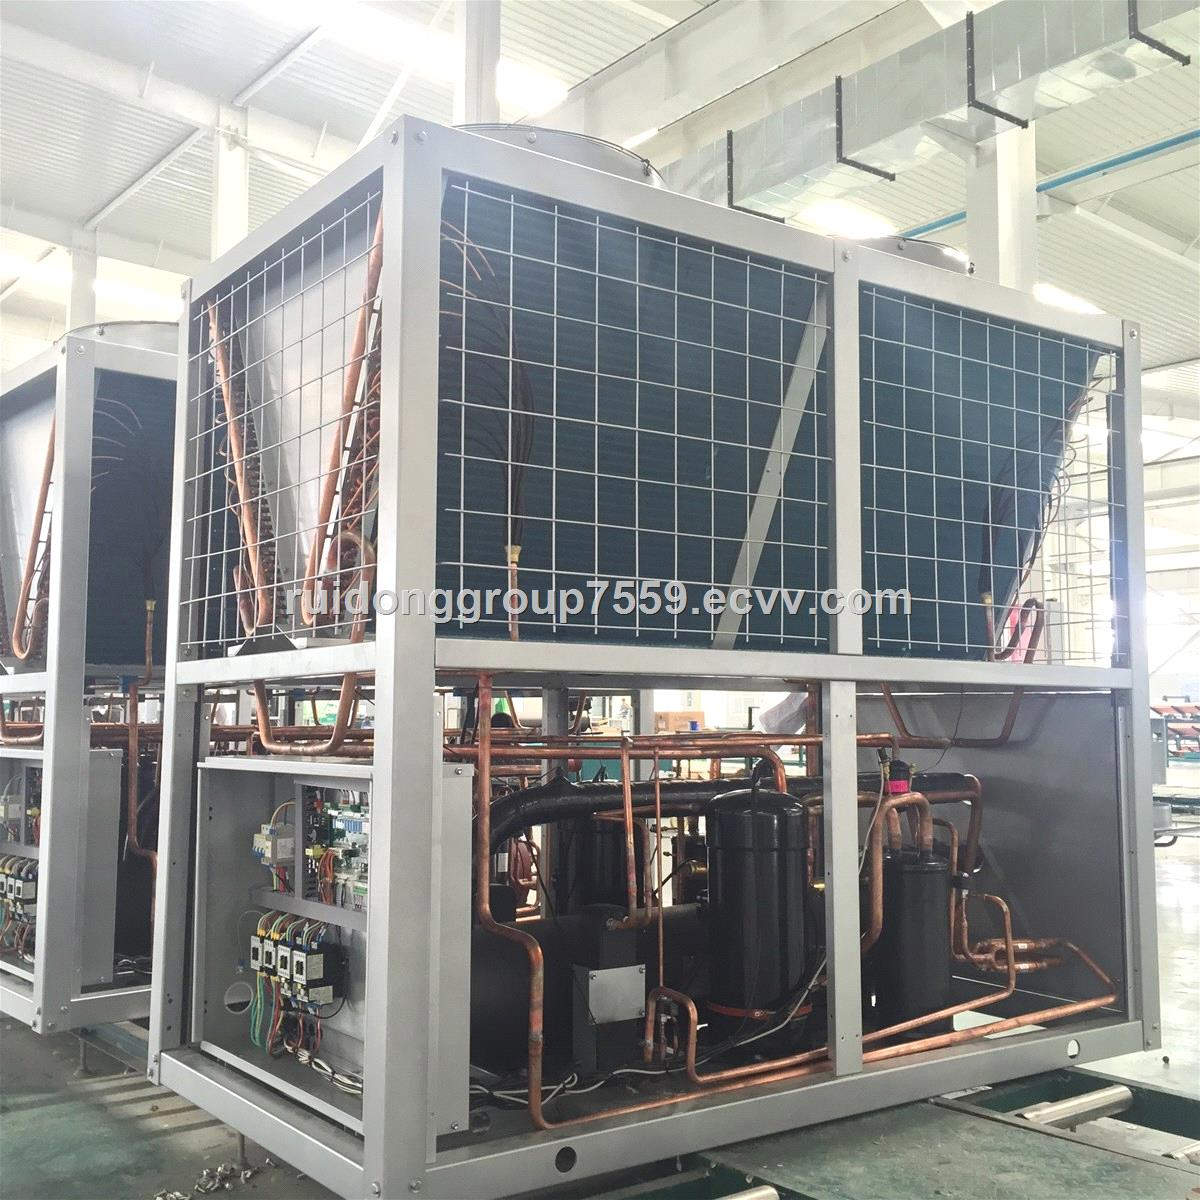 top discharge modular air cooled chiller with low consumption